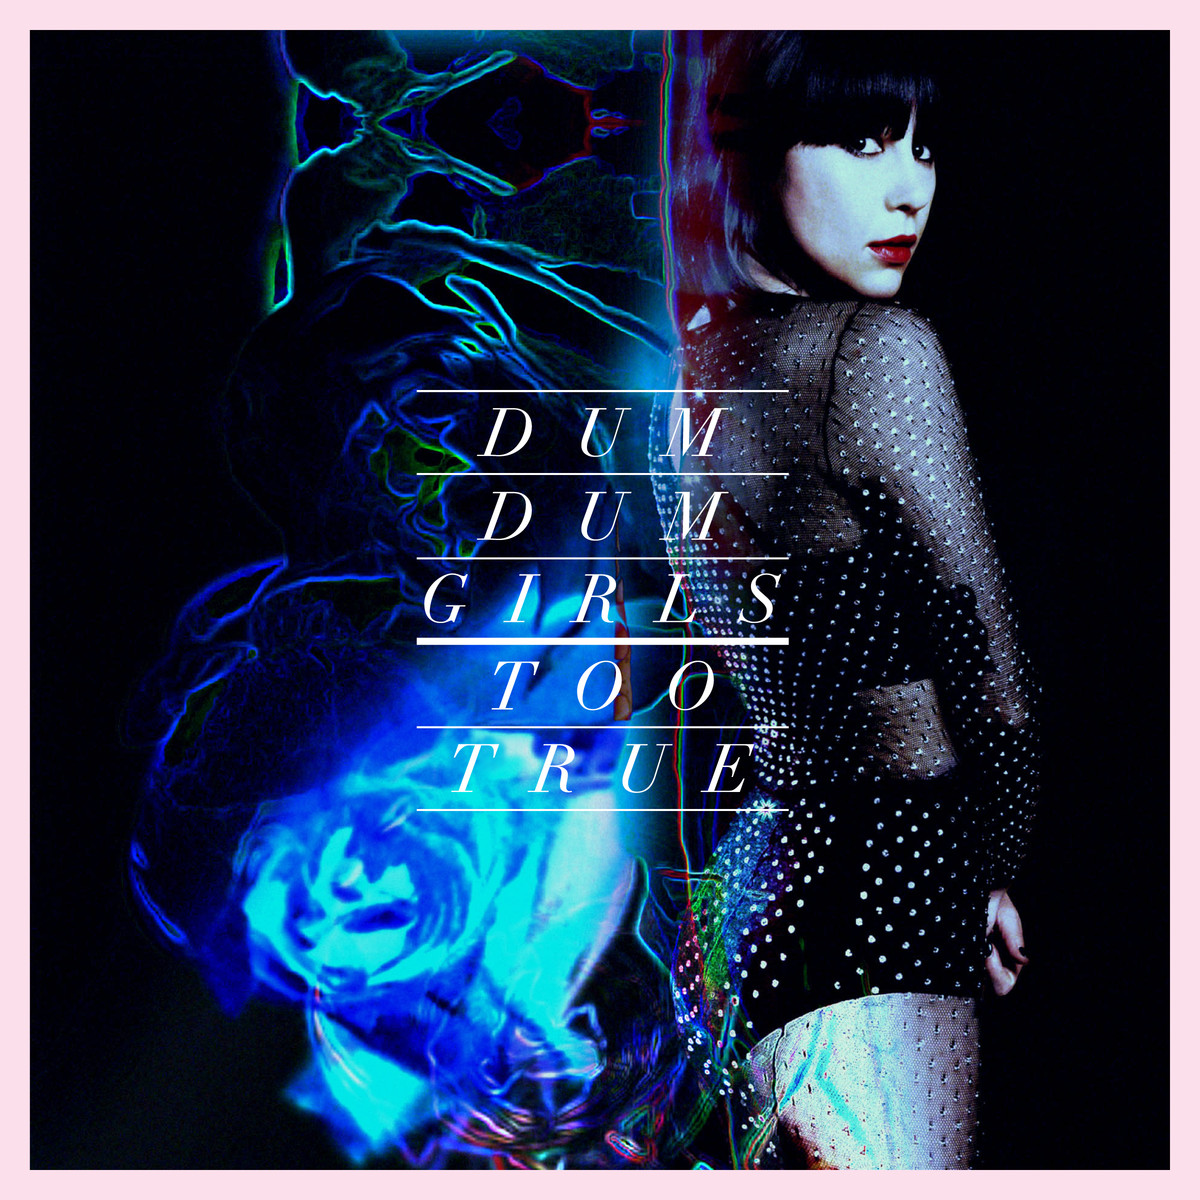 Dum Dum Girls' Too True is out now.